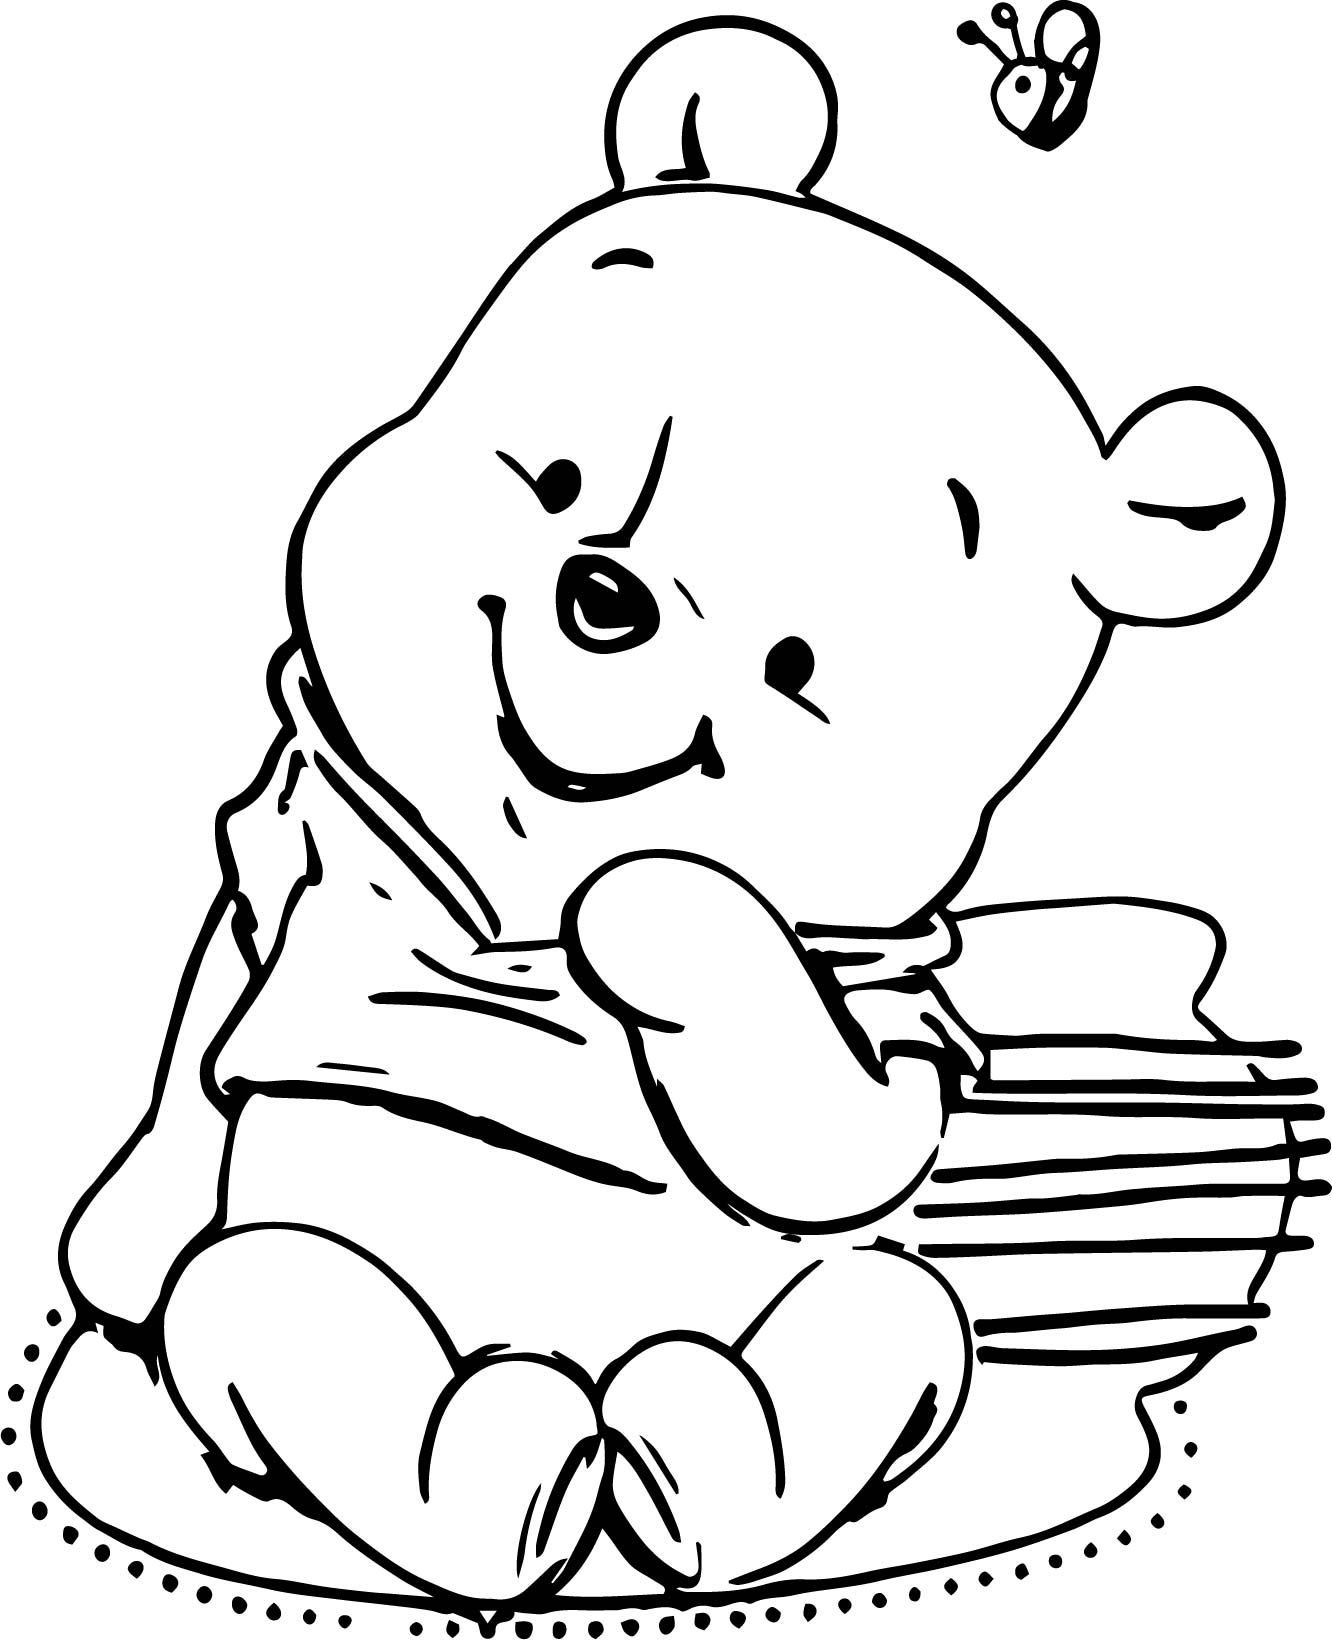 Cool Classic Winnie The Pooh Baby Shower Invitations Templates Coloring Page Bear Coloring Pages Classic Baby Shower Baby Shower Invitation Templates